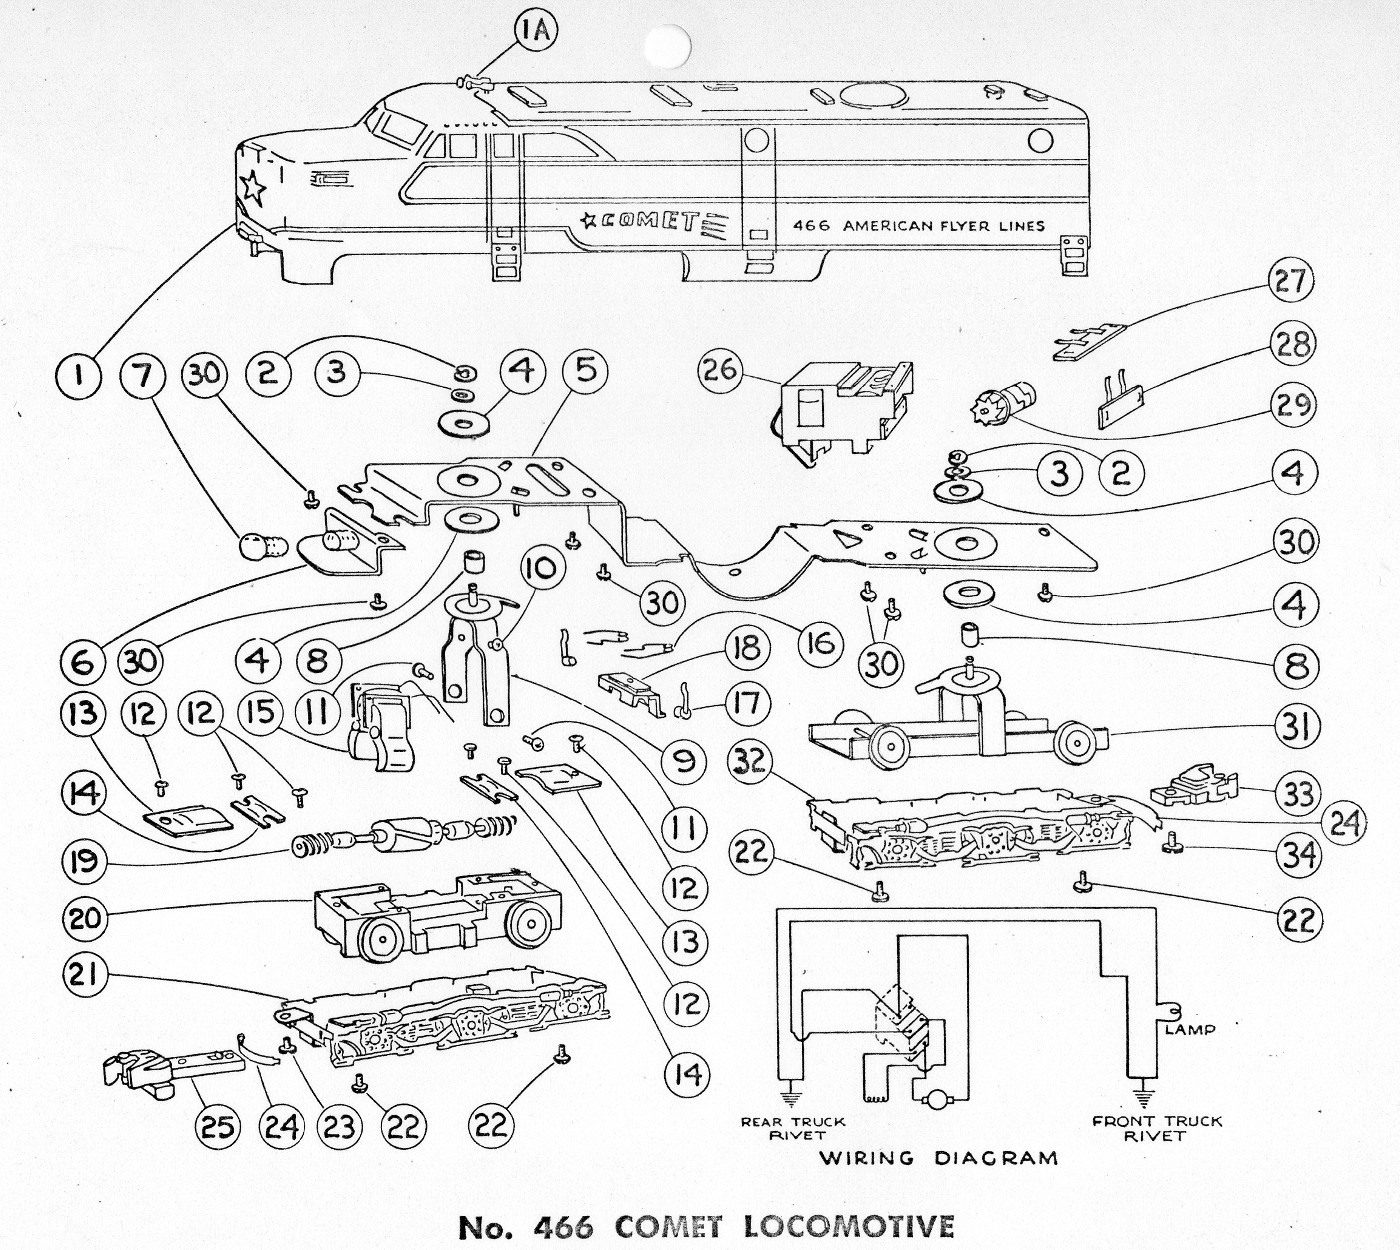 Lionel Track Wiring Diagram | Schematic Diagram on wiring lionel 2020, wiring lionel switches, wiring lionel transformers, wiring lionel tmcc command base, wiring lionel accessories, terminal block schematic layout, wiring lionel track,